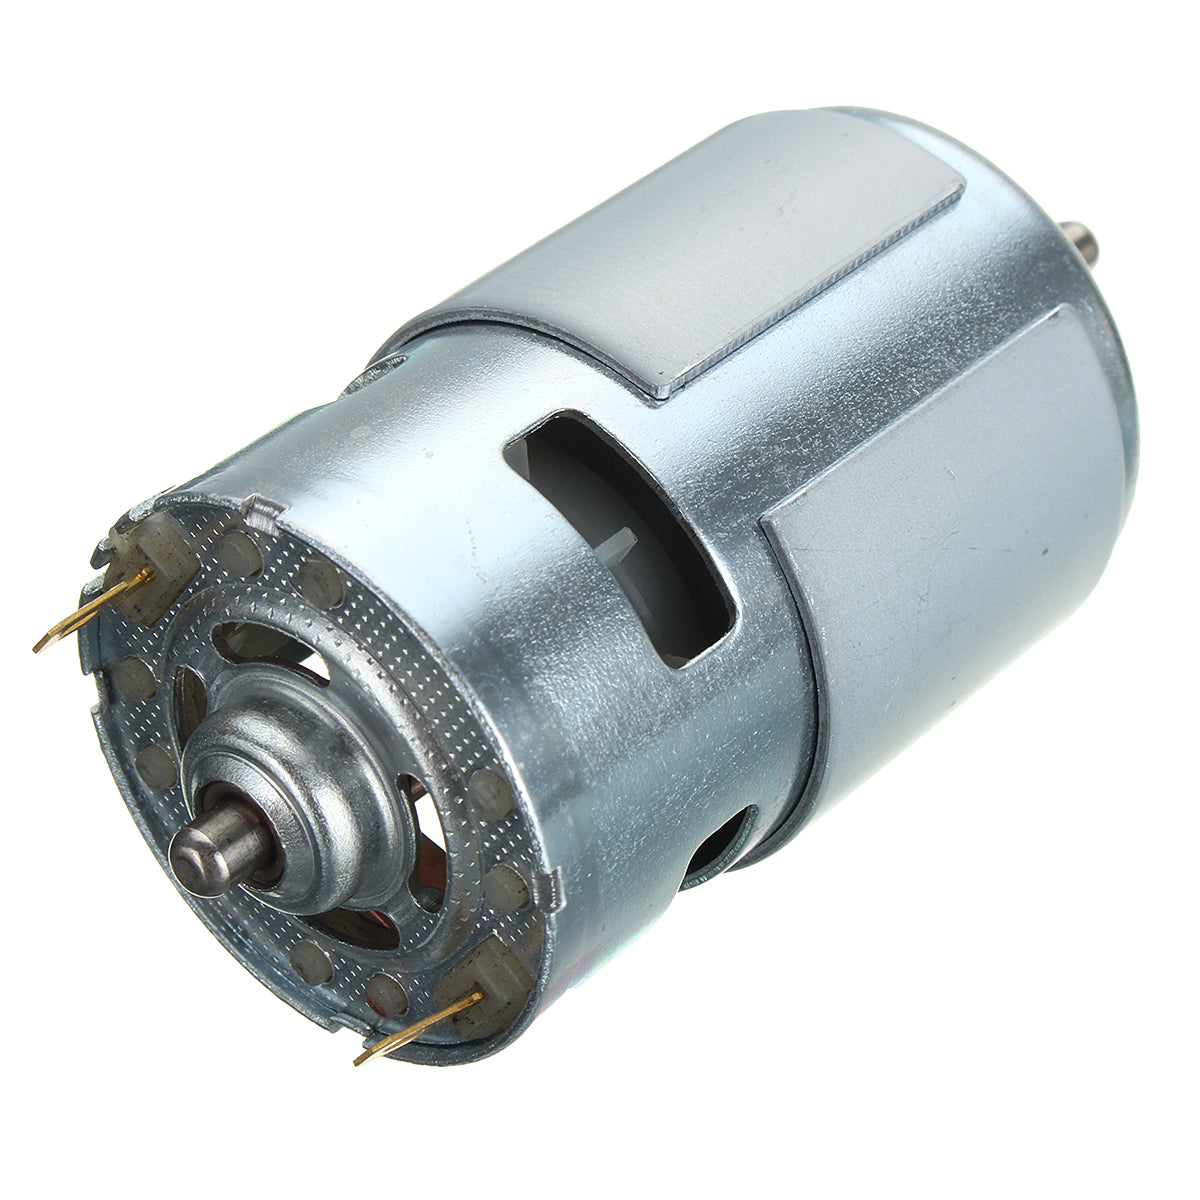 Dc 12v 24v 36v 500w Brushless Motor Controller Hall Balanced Pwm Speed For 300w Cnc Spindle Kits Support Ac And 775 3500 9000rpm Large Torque High Power Low Noise